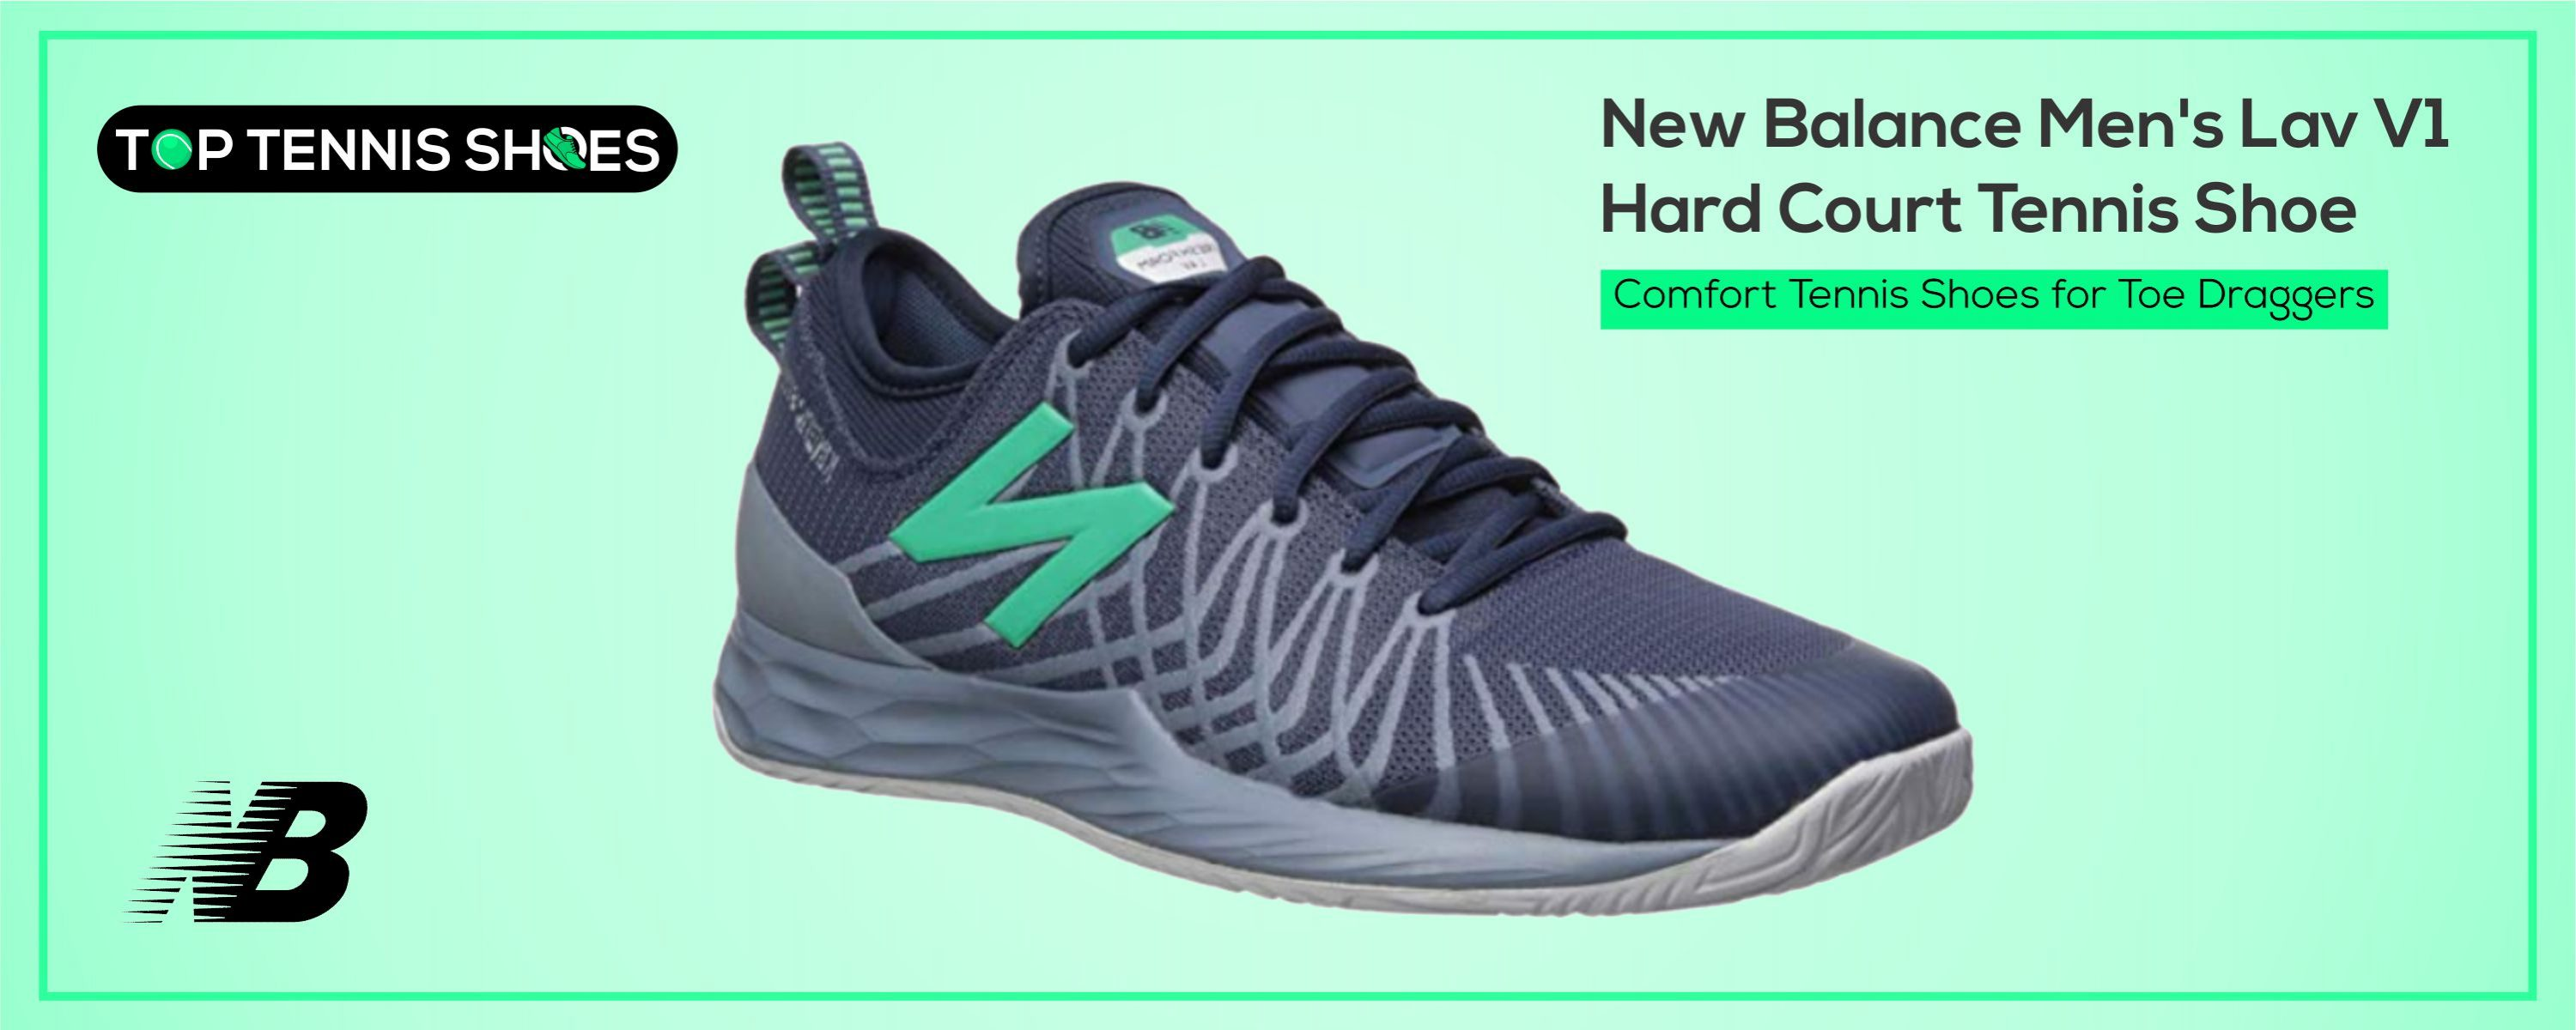 New Balance Tennis Shoes for Toe Draggers